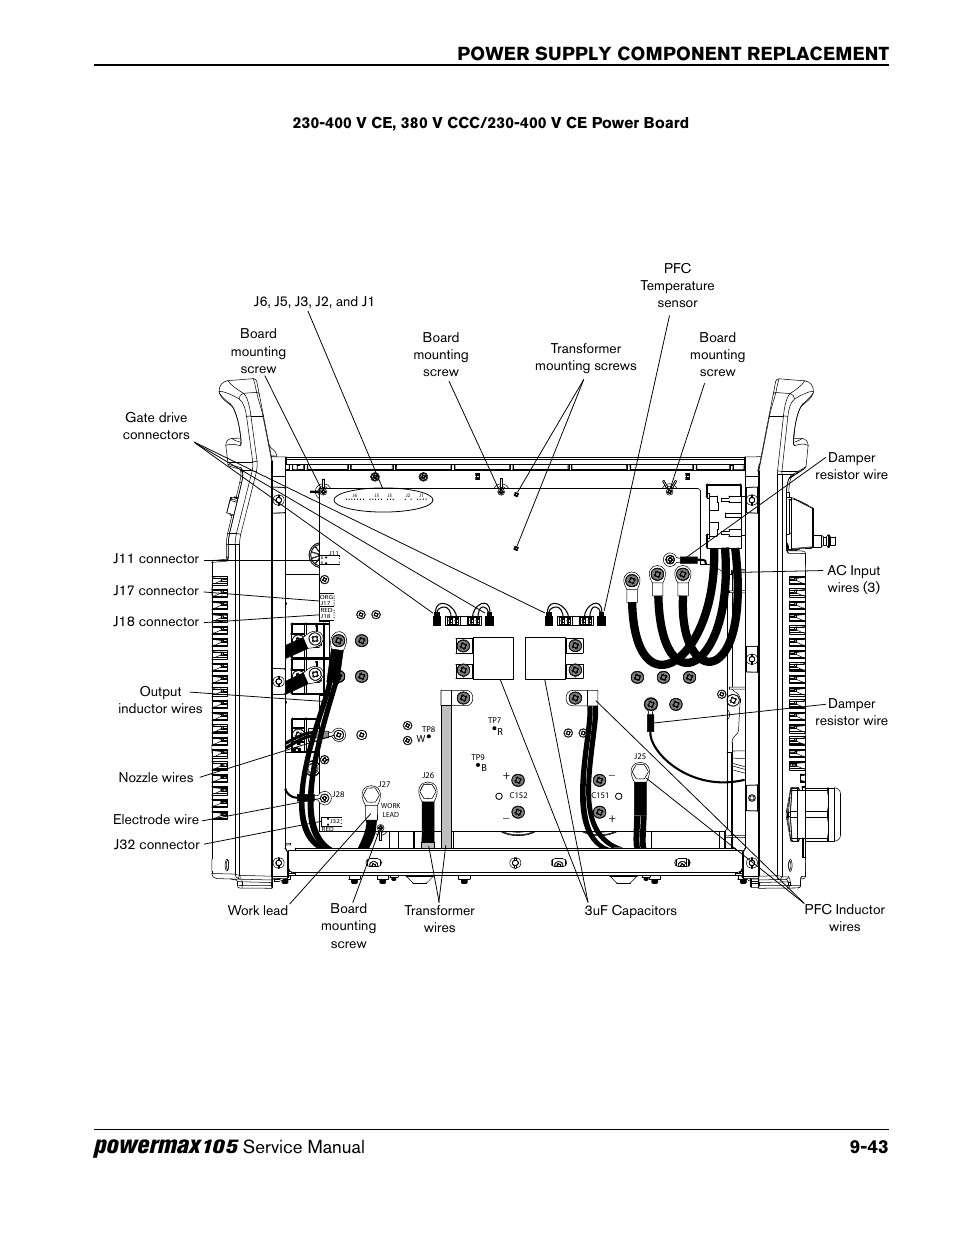 Powermax Power Supply Component Replacement Hypertherm Ccc Wiring Diagram Powermax105 Service Manual User Page 241 343